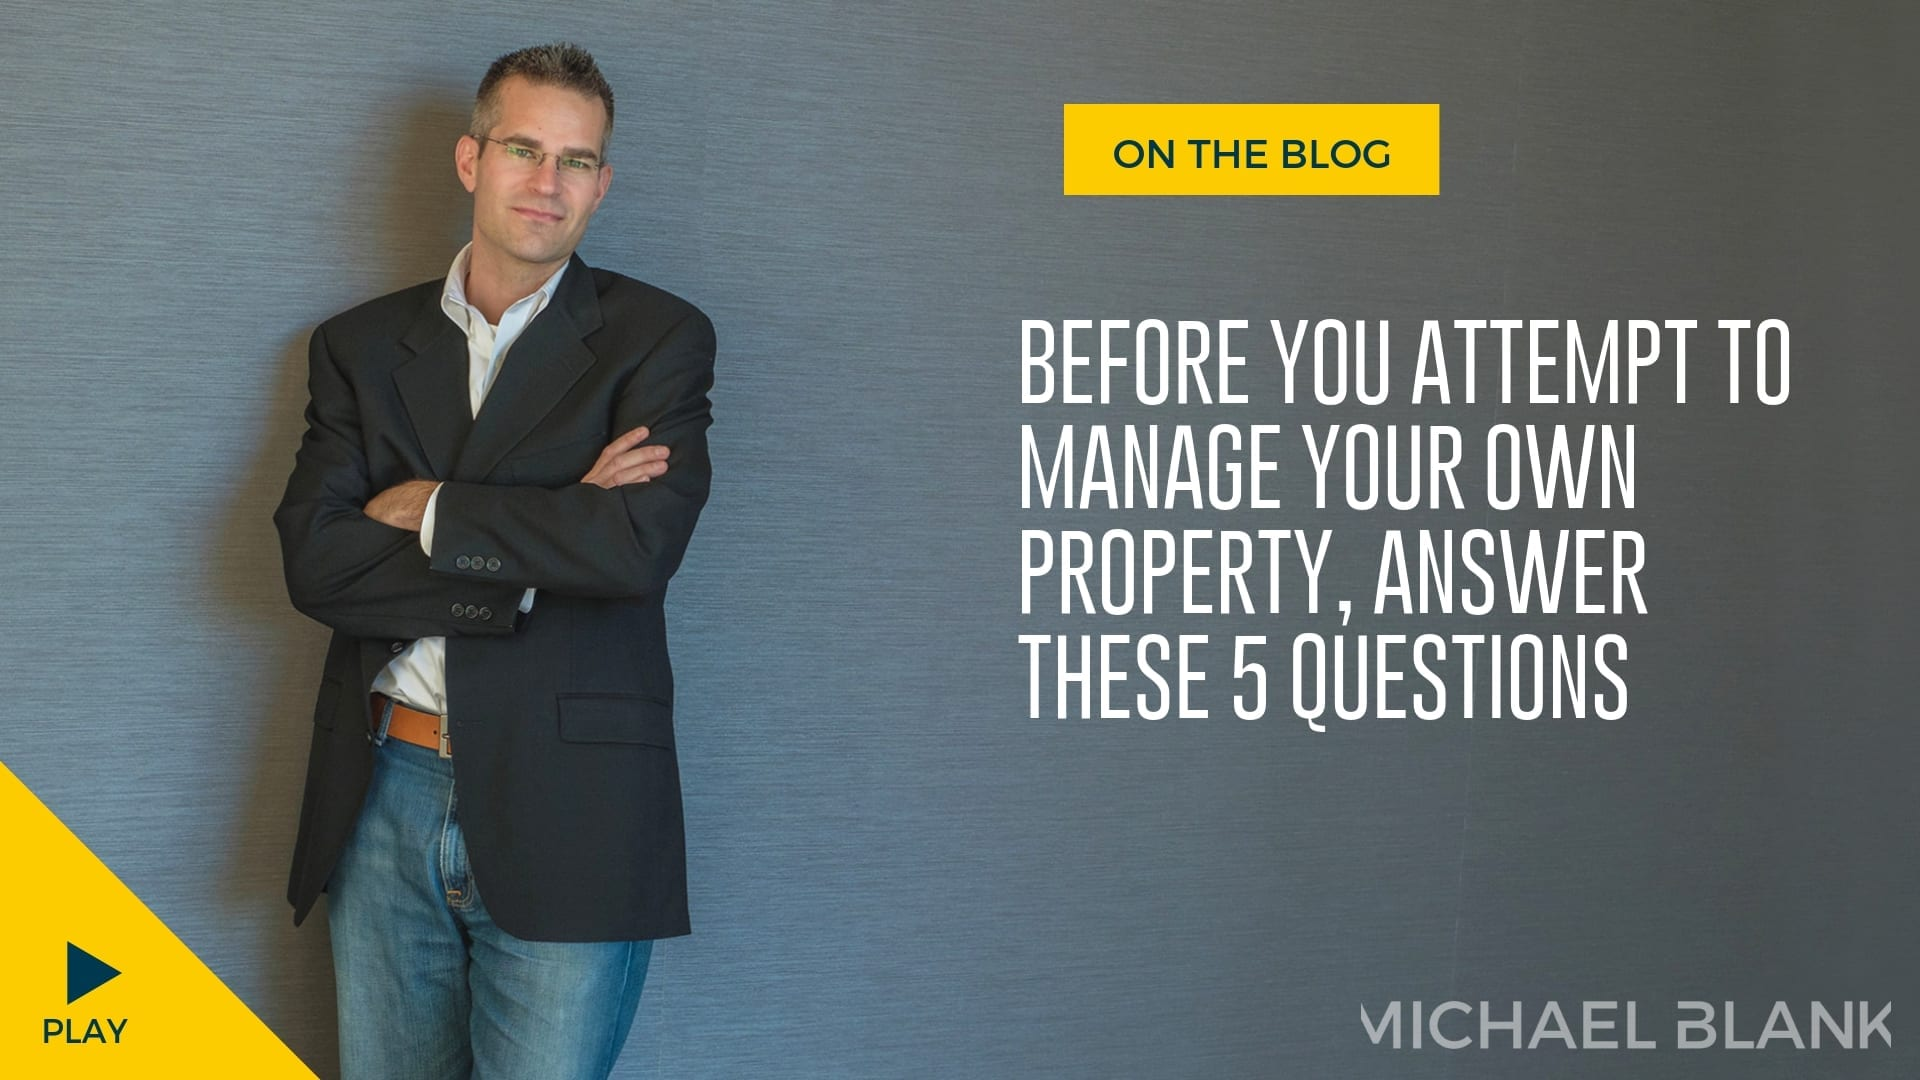 Before You Attempt to Manage Your Own Property, Answer These 5 Questions